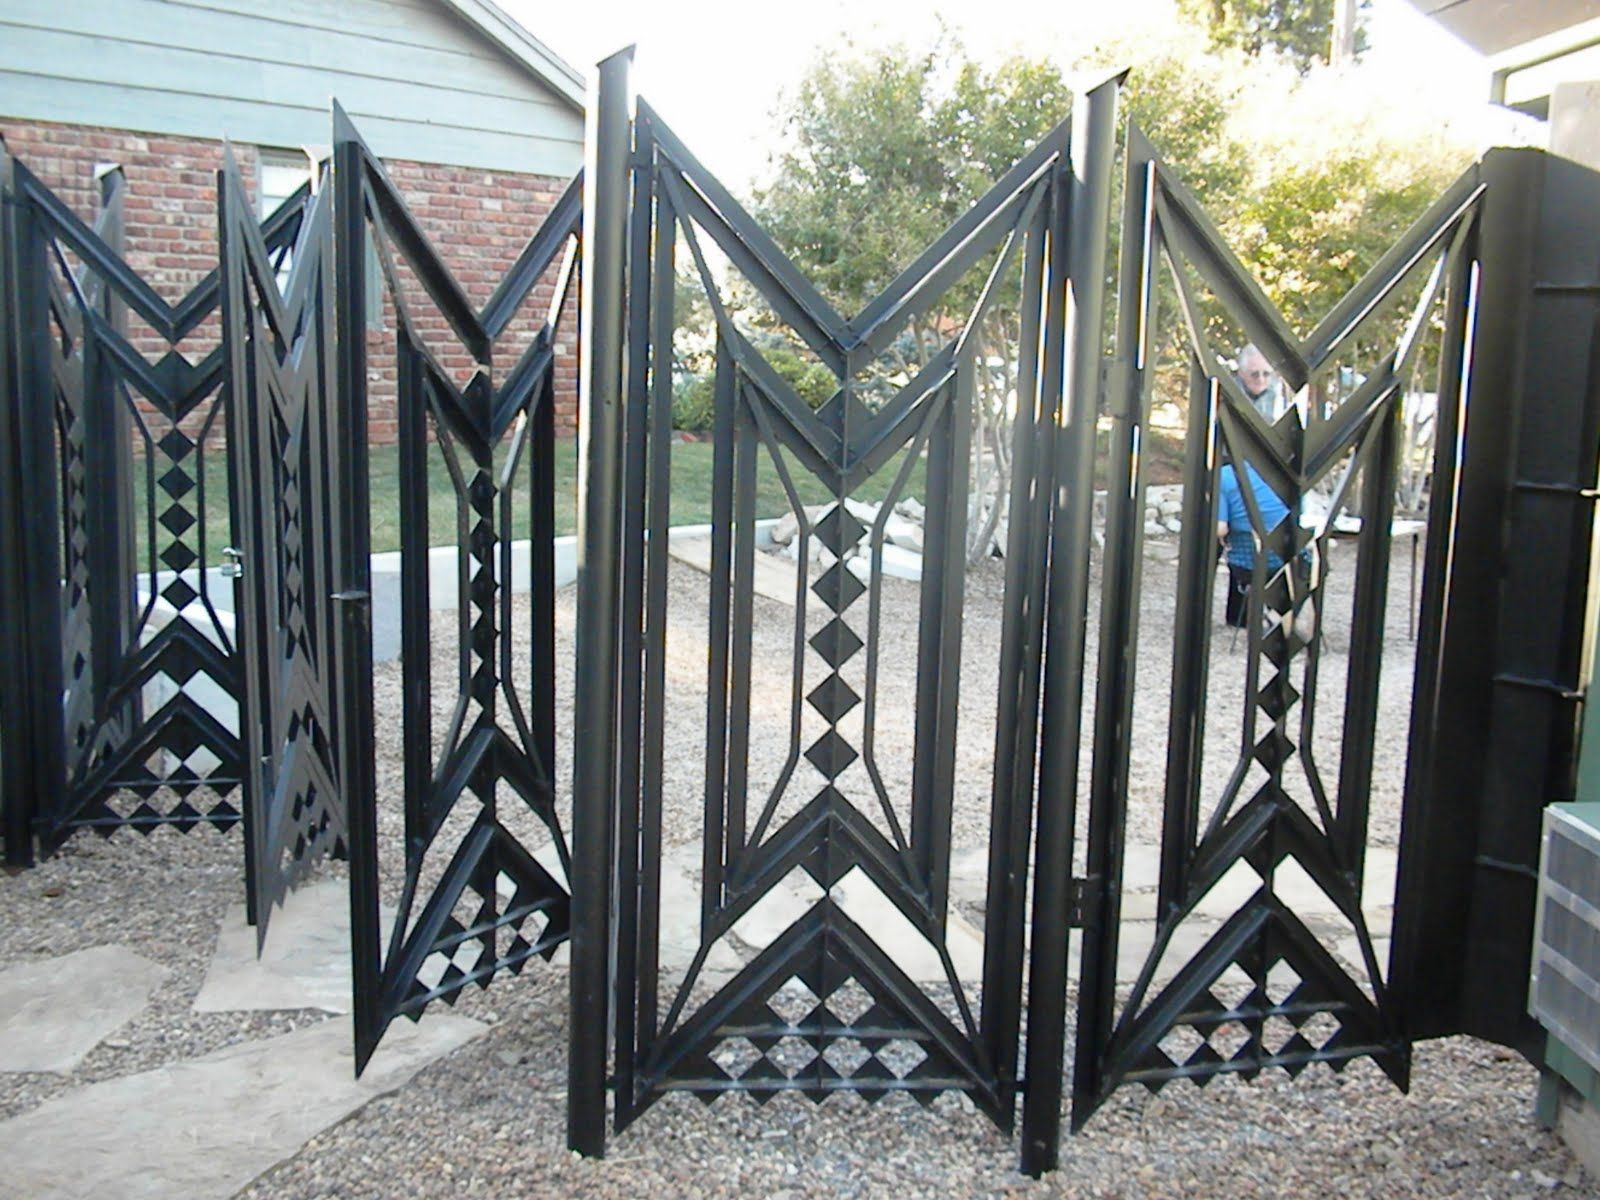 homes pictures modern x gate designs for homes. 14 best images about Home Gate Design on Pinterest   Modern homes